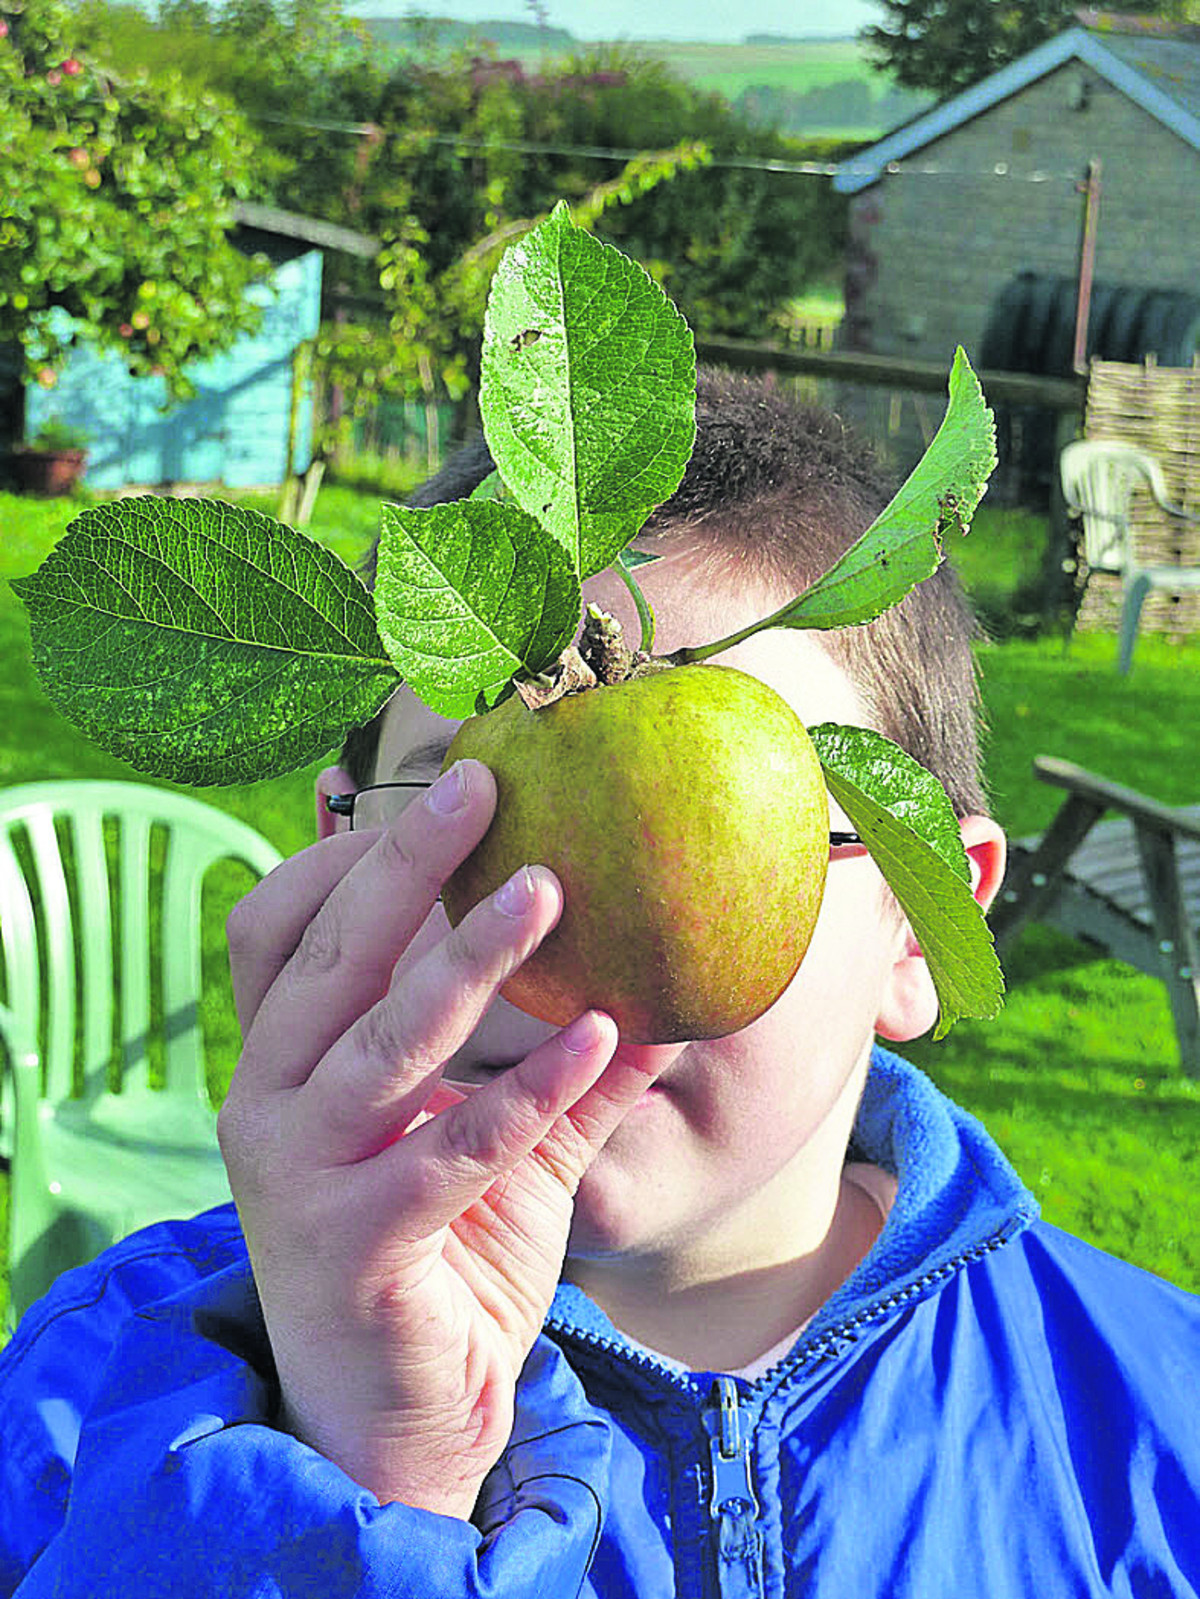 Codford arty orchards project proves most fruitful